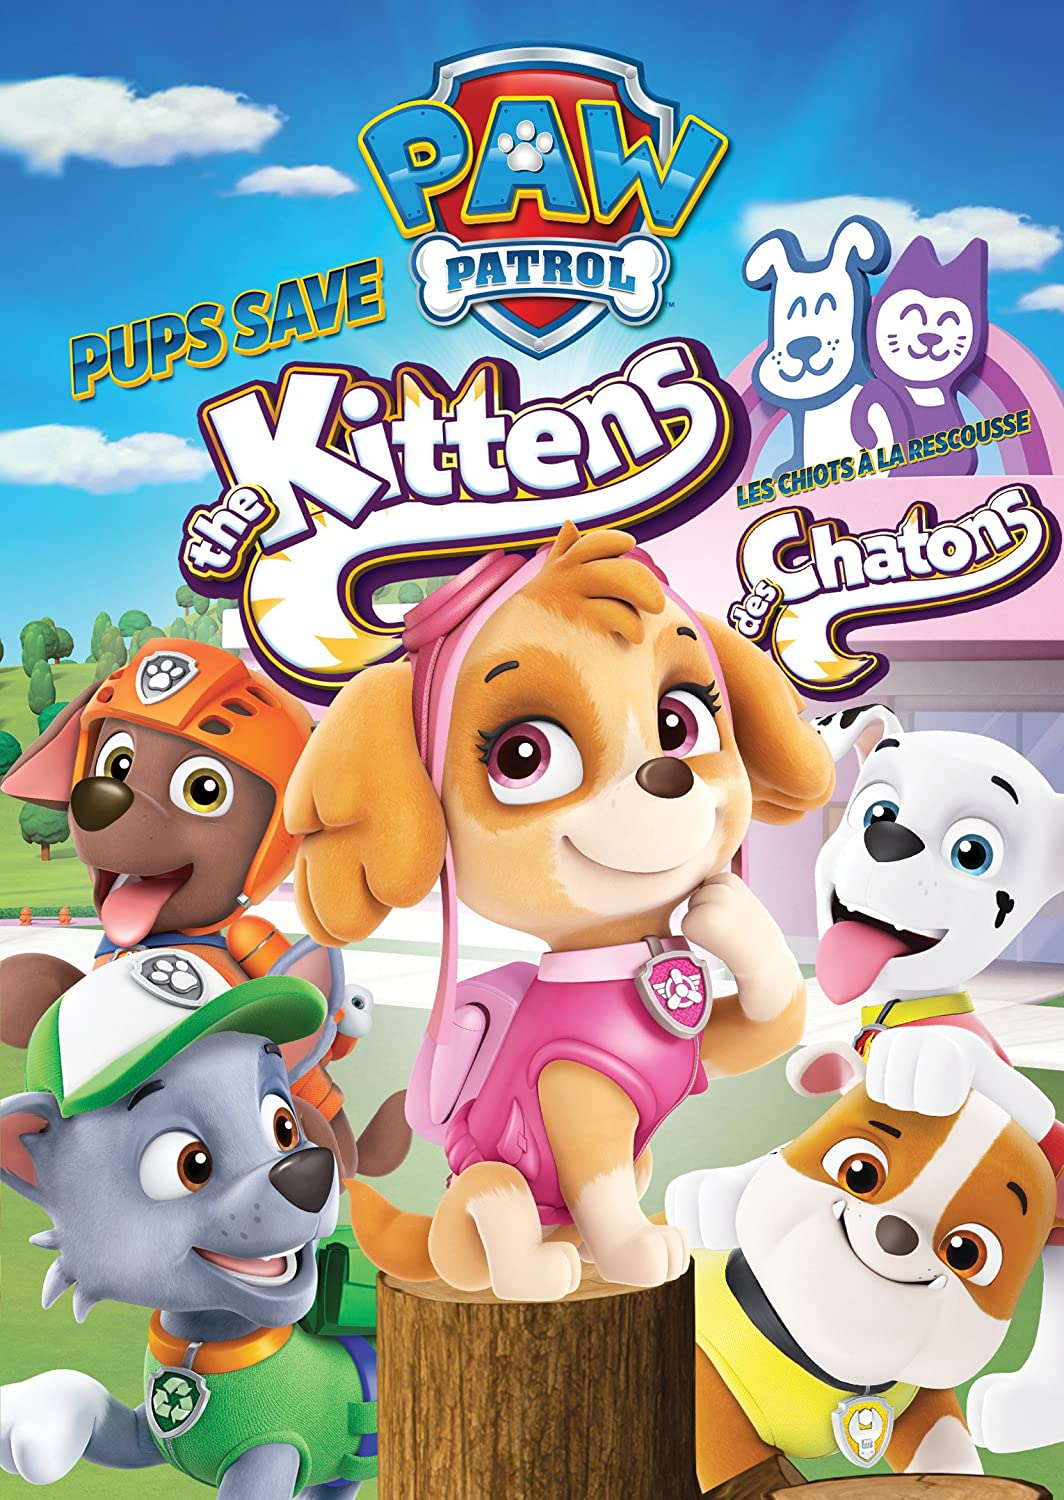 Image result for paw patrol pups save kittens